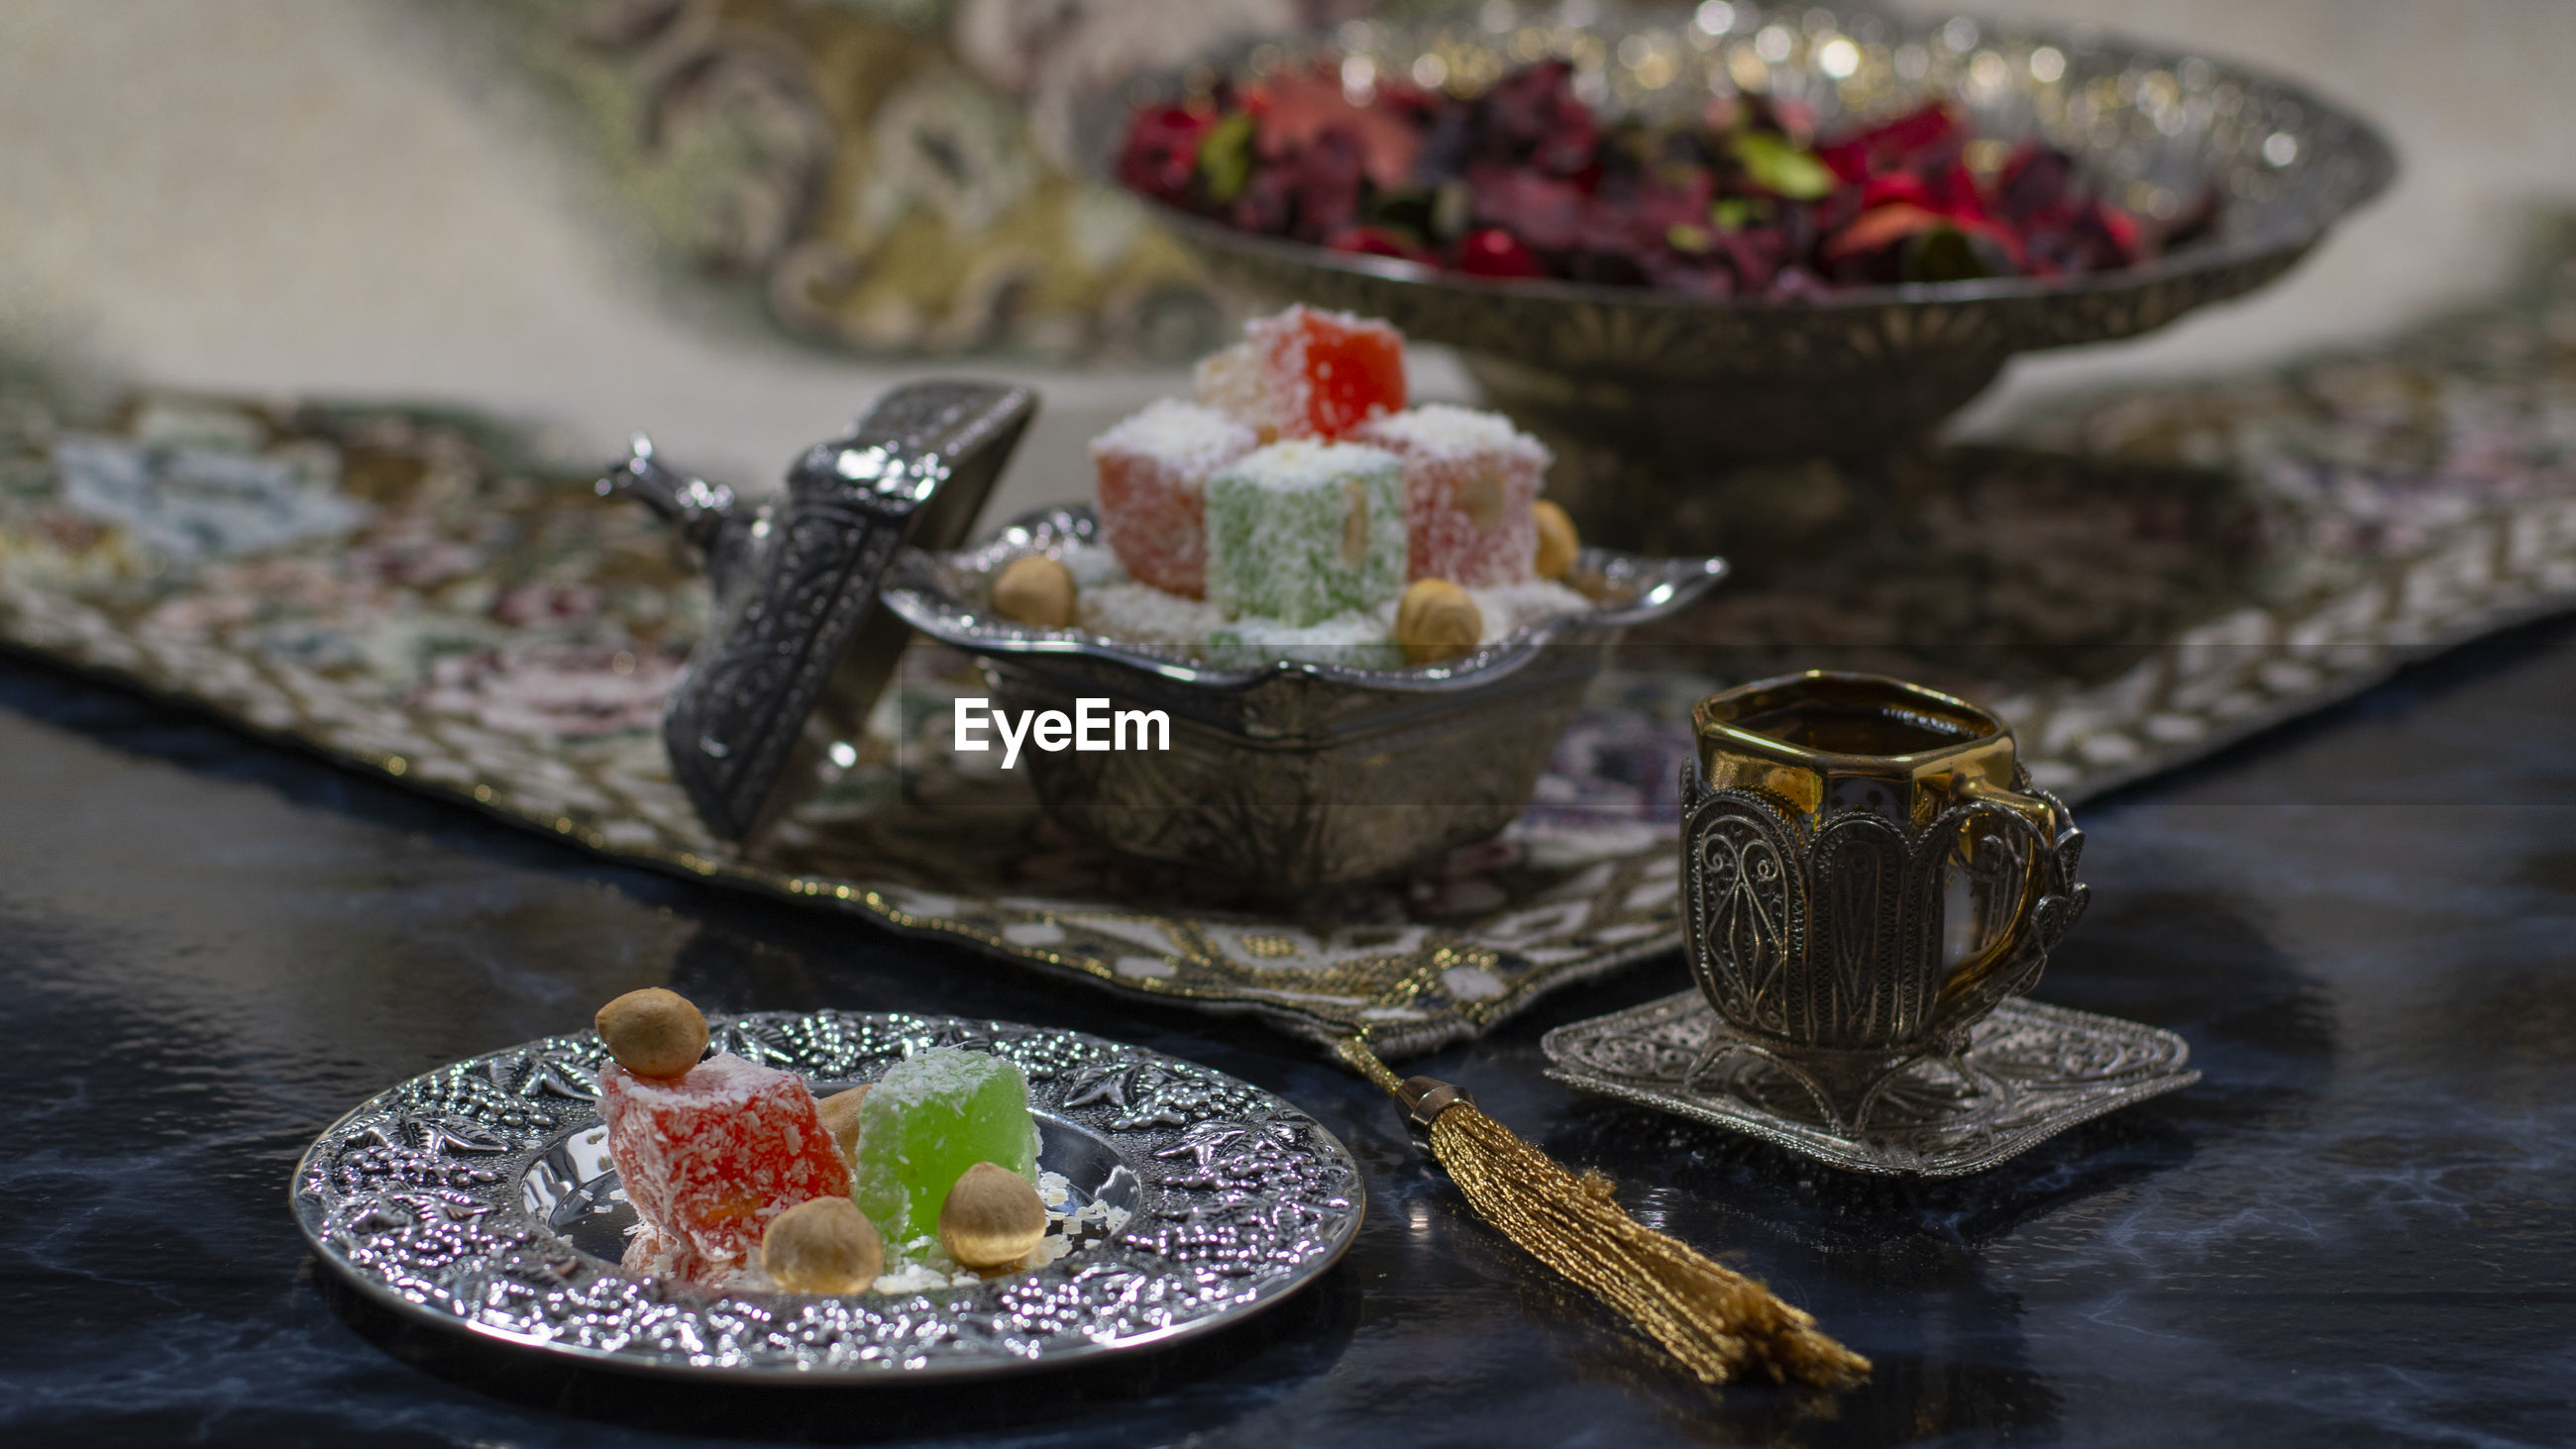 Turkish delight or lokum is a family of confections based on a gel of starch and sugar.